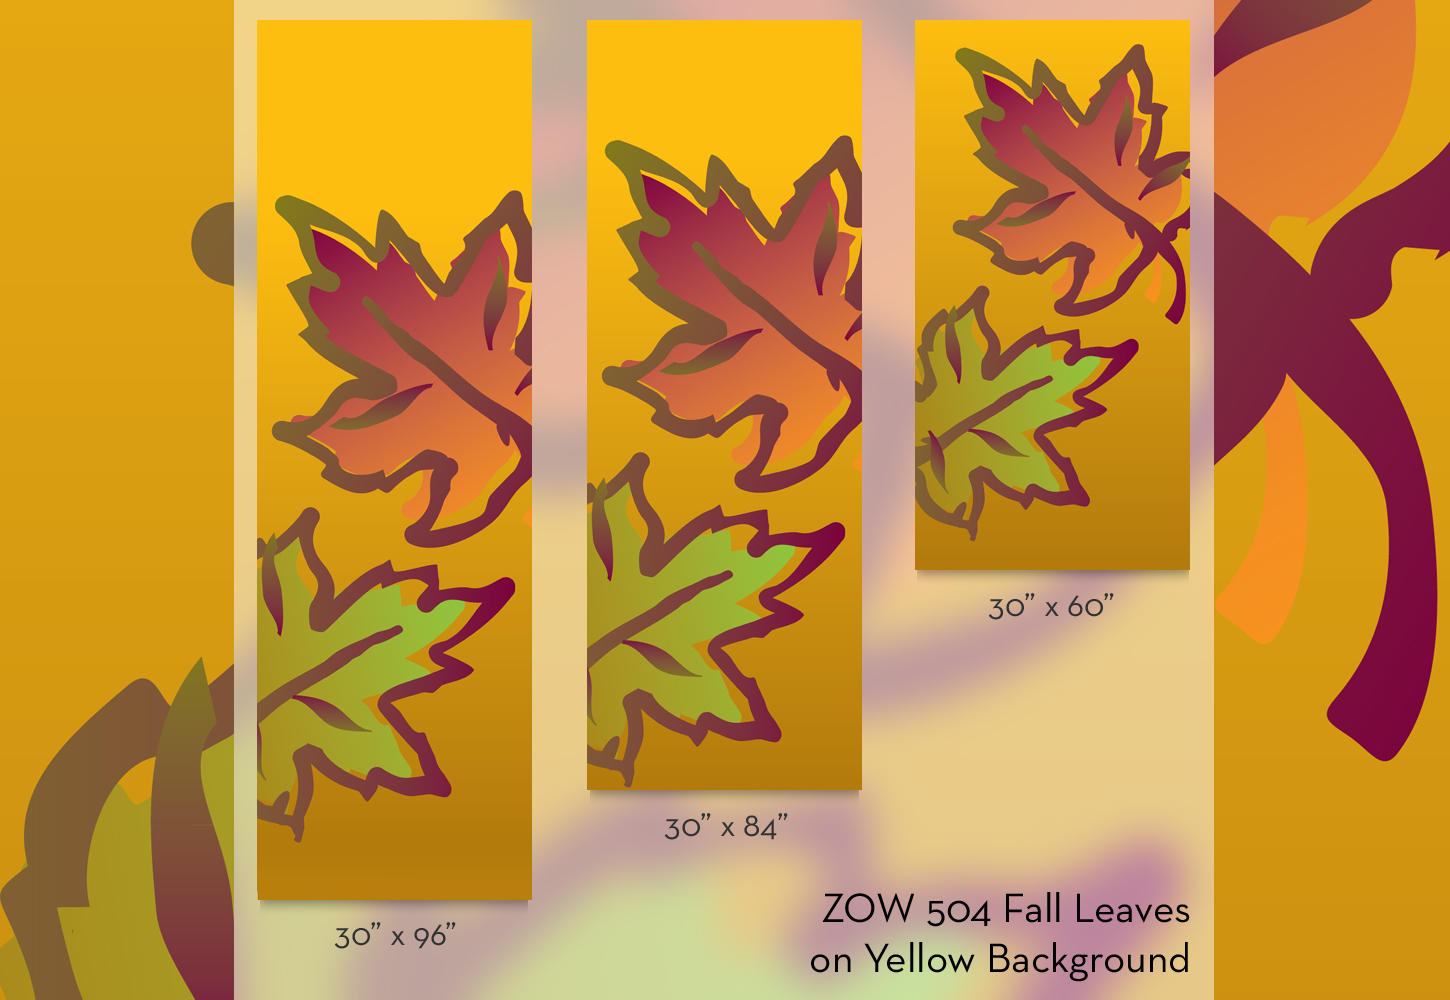 ZOW 504 Fall Leaves on Yellow Background